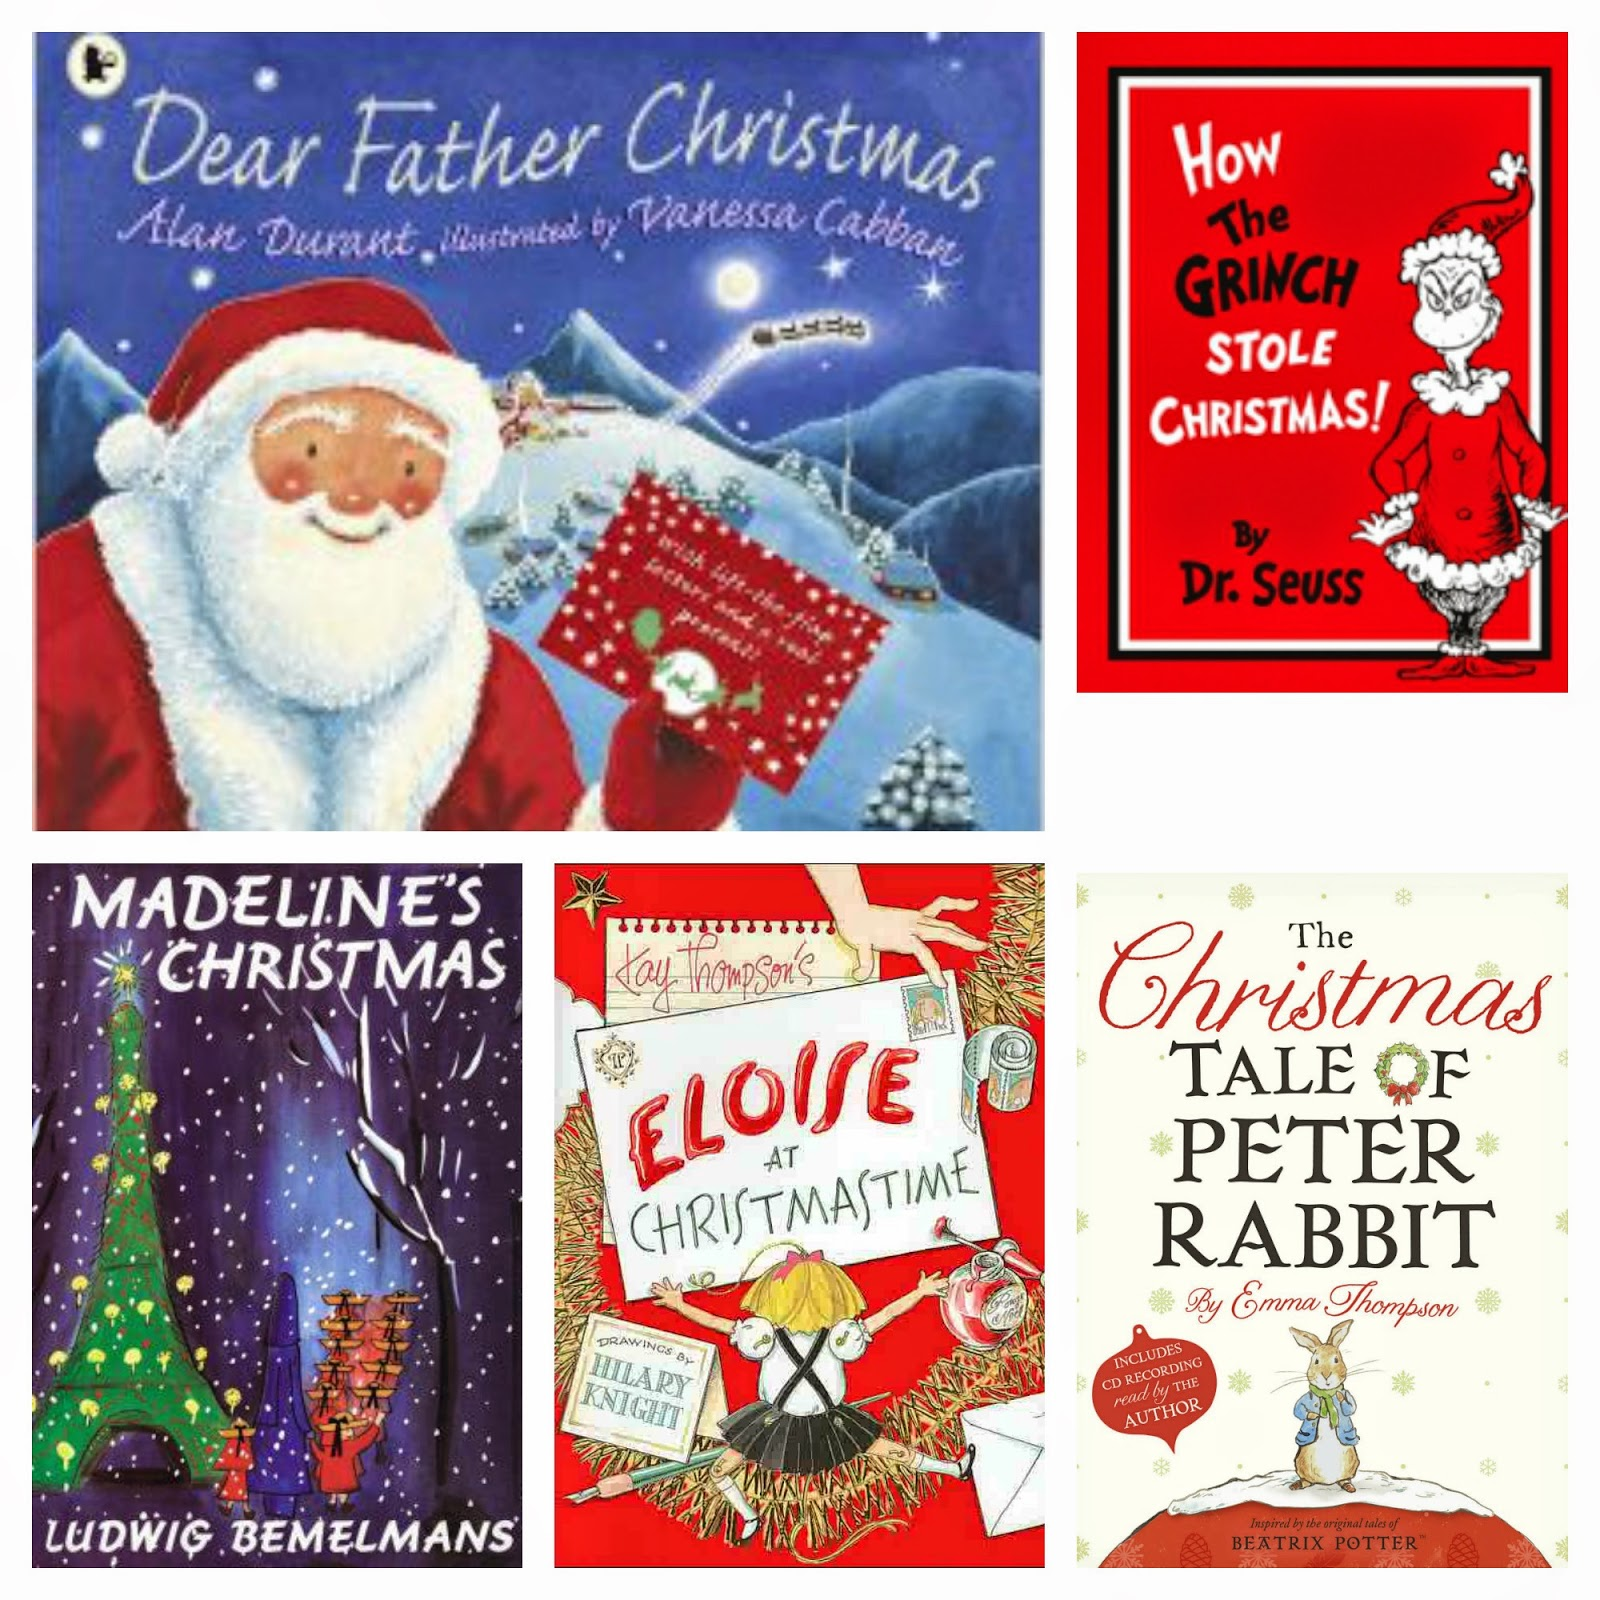 25 Days of Christmas Books *BOOKCLUB SPECIAL* | book club special | sunday night book club | christmas books for kids | christmas books | christmas stories |books for babies and toddlers | kids books | classic library | mamasVib | christmas books | gift ideas